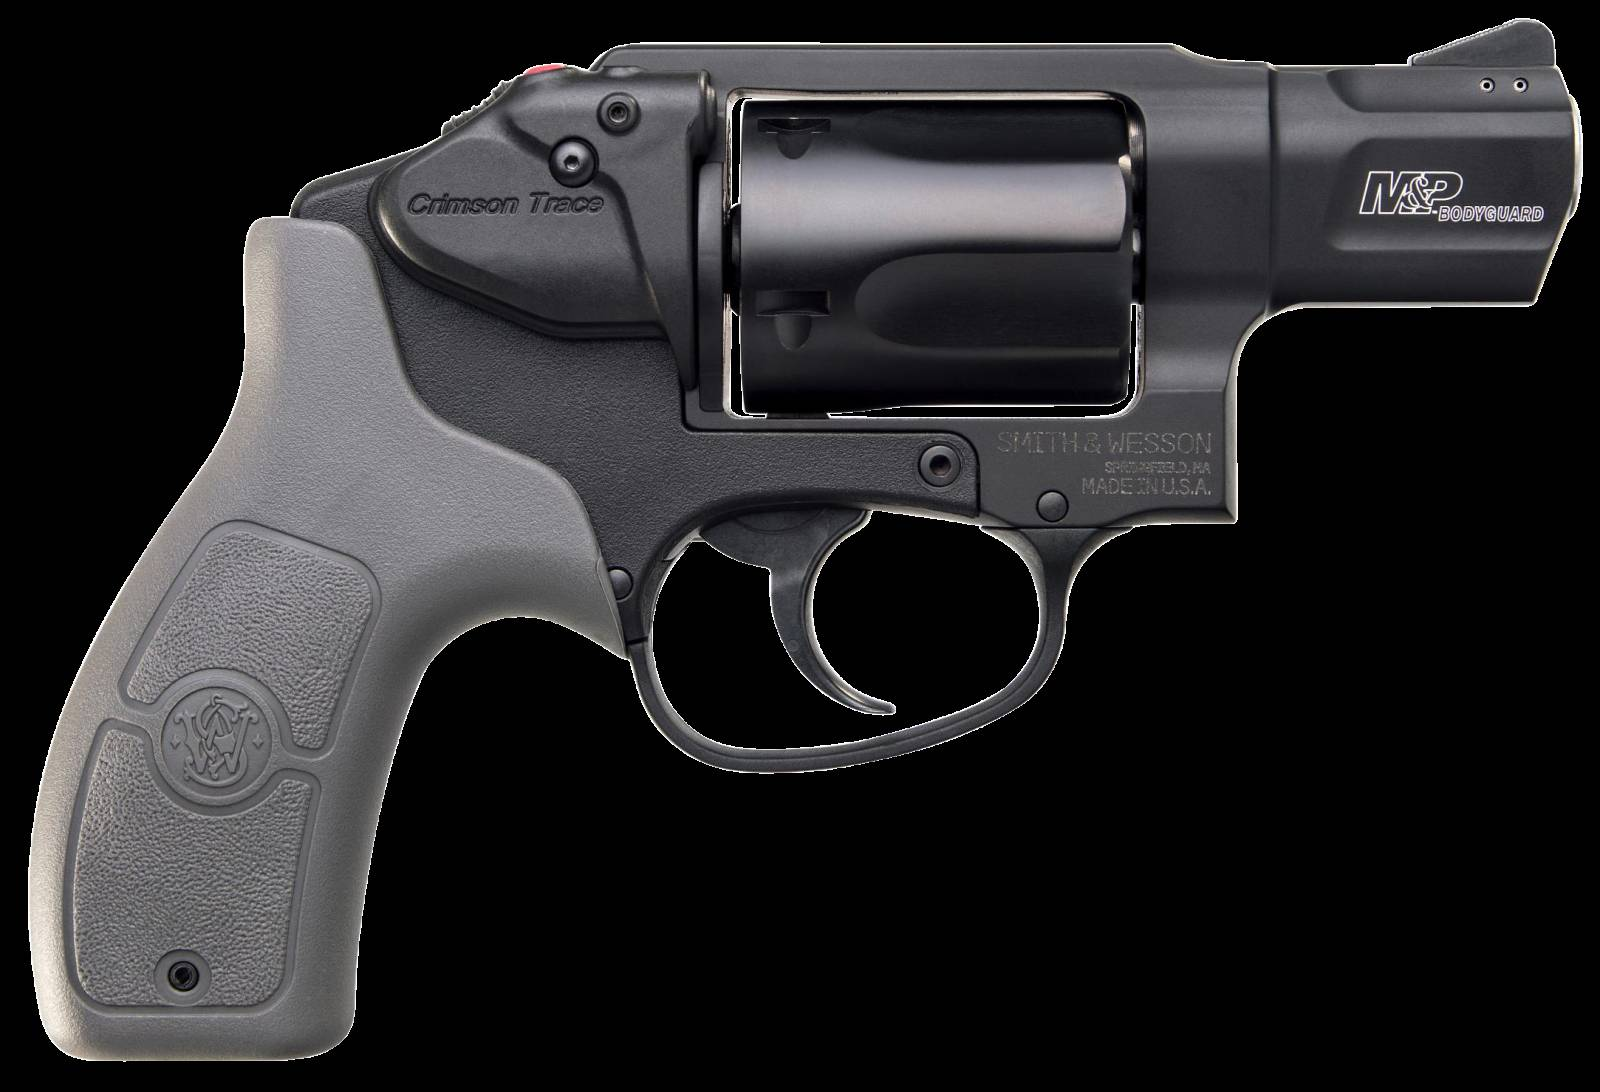 Smith & Wesson 12056 M&P Bodyguard 38 Crimson Trace  Revolver 38 Smith & Wesson Special +P 1.875